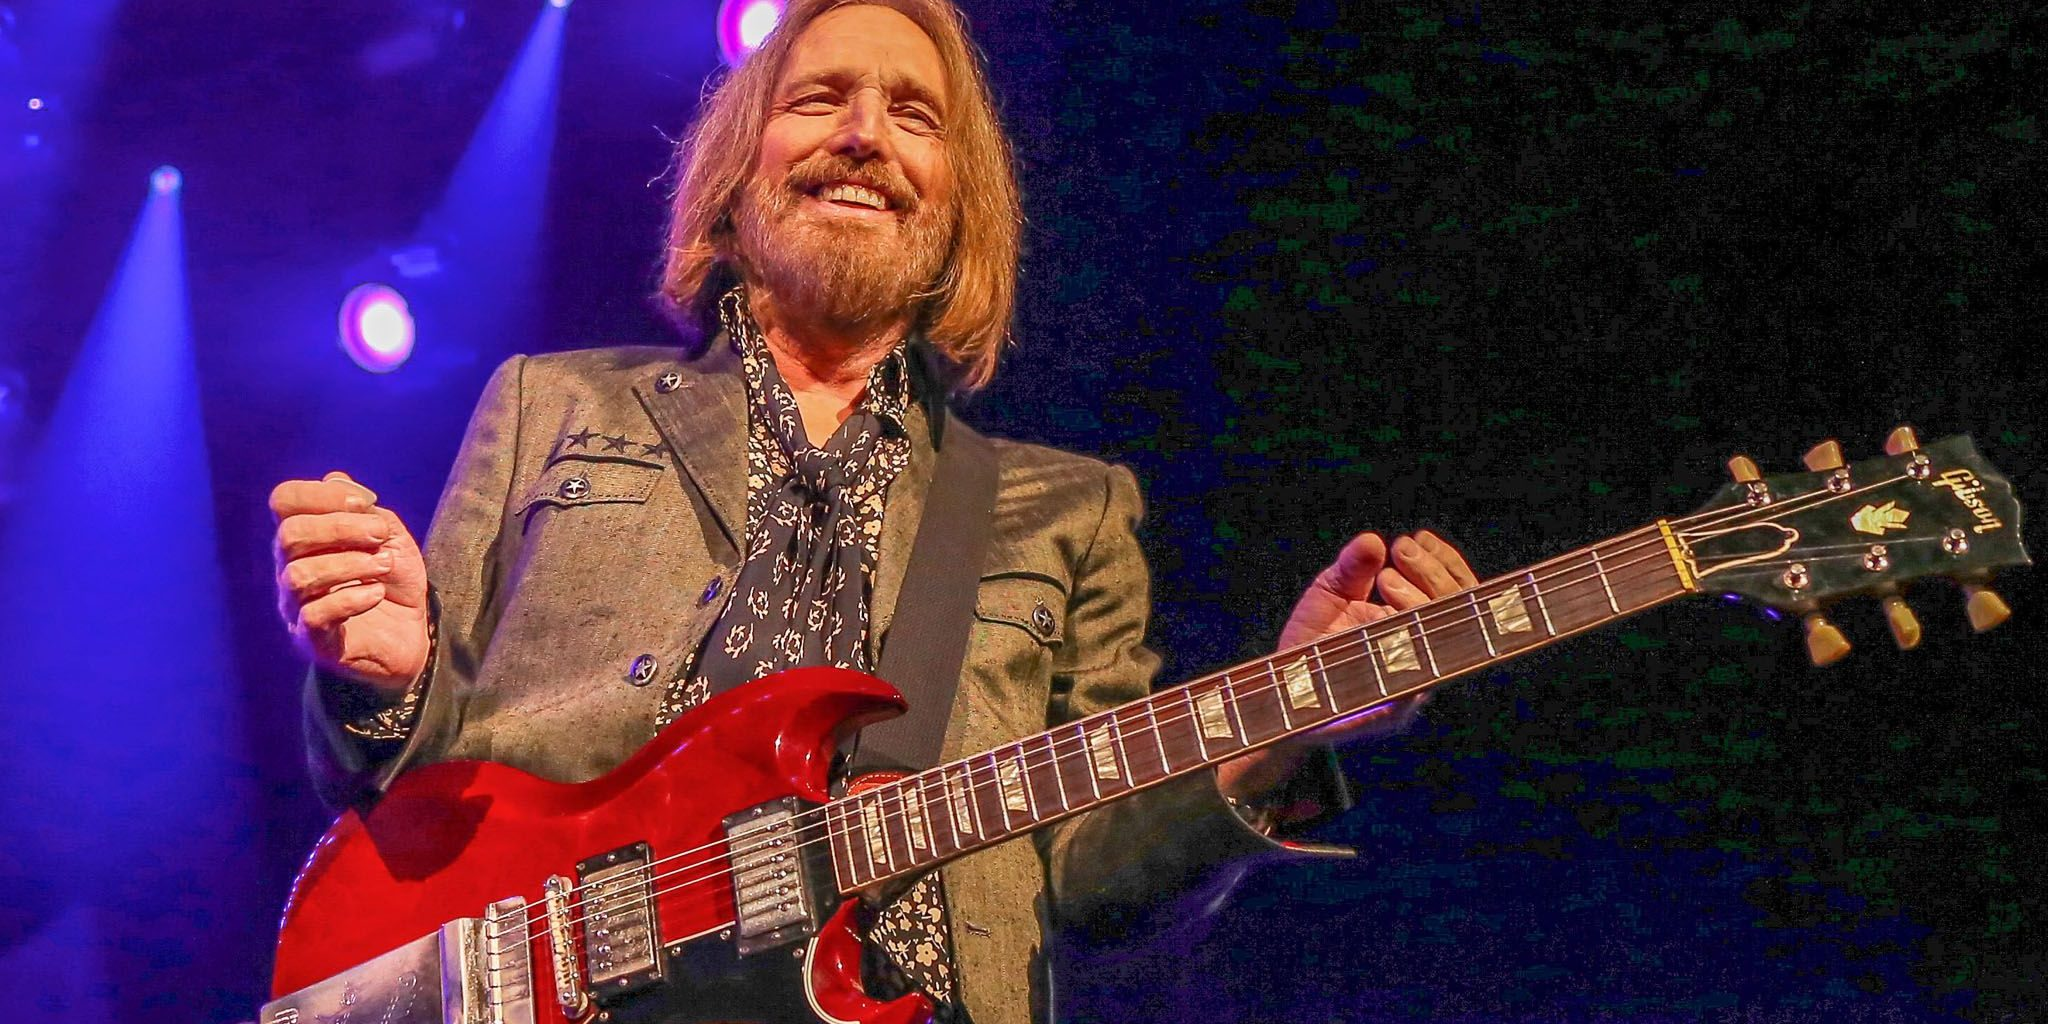 INÉDITA: dieron a conocer For Real, una canción inédita de Tom Petty